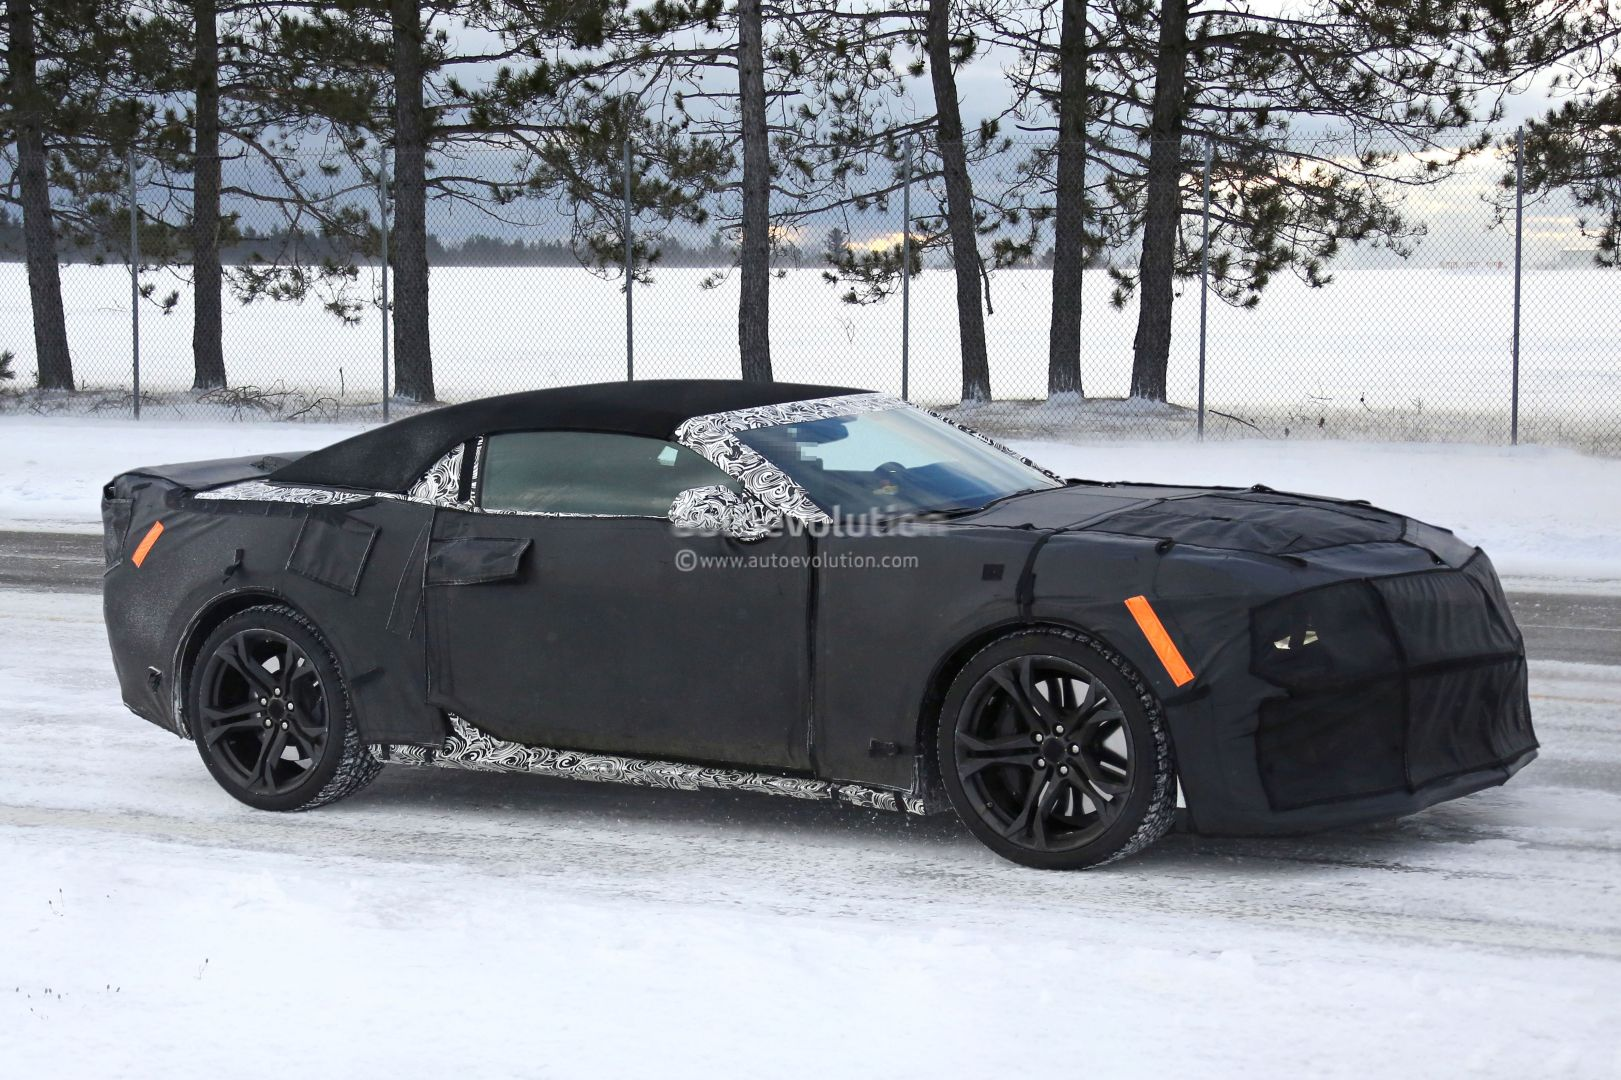 2017 chevrolet camaro zl1 convertible spied testing its supercharged 6 2l v8 in the snow. Black Bedroom Furniture Sets. Home Design Ideas